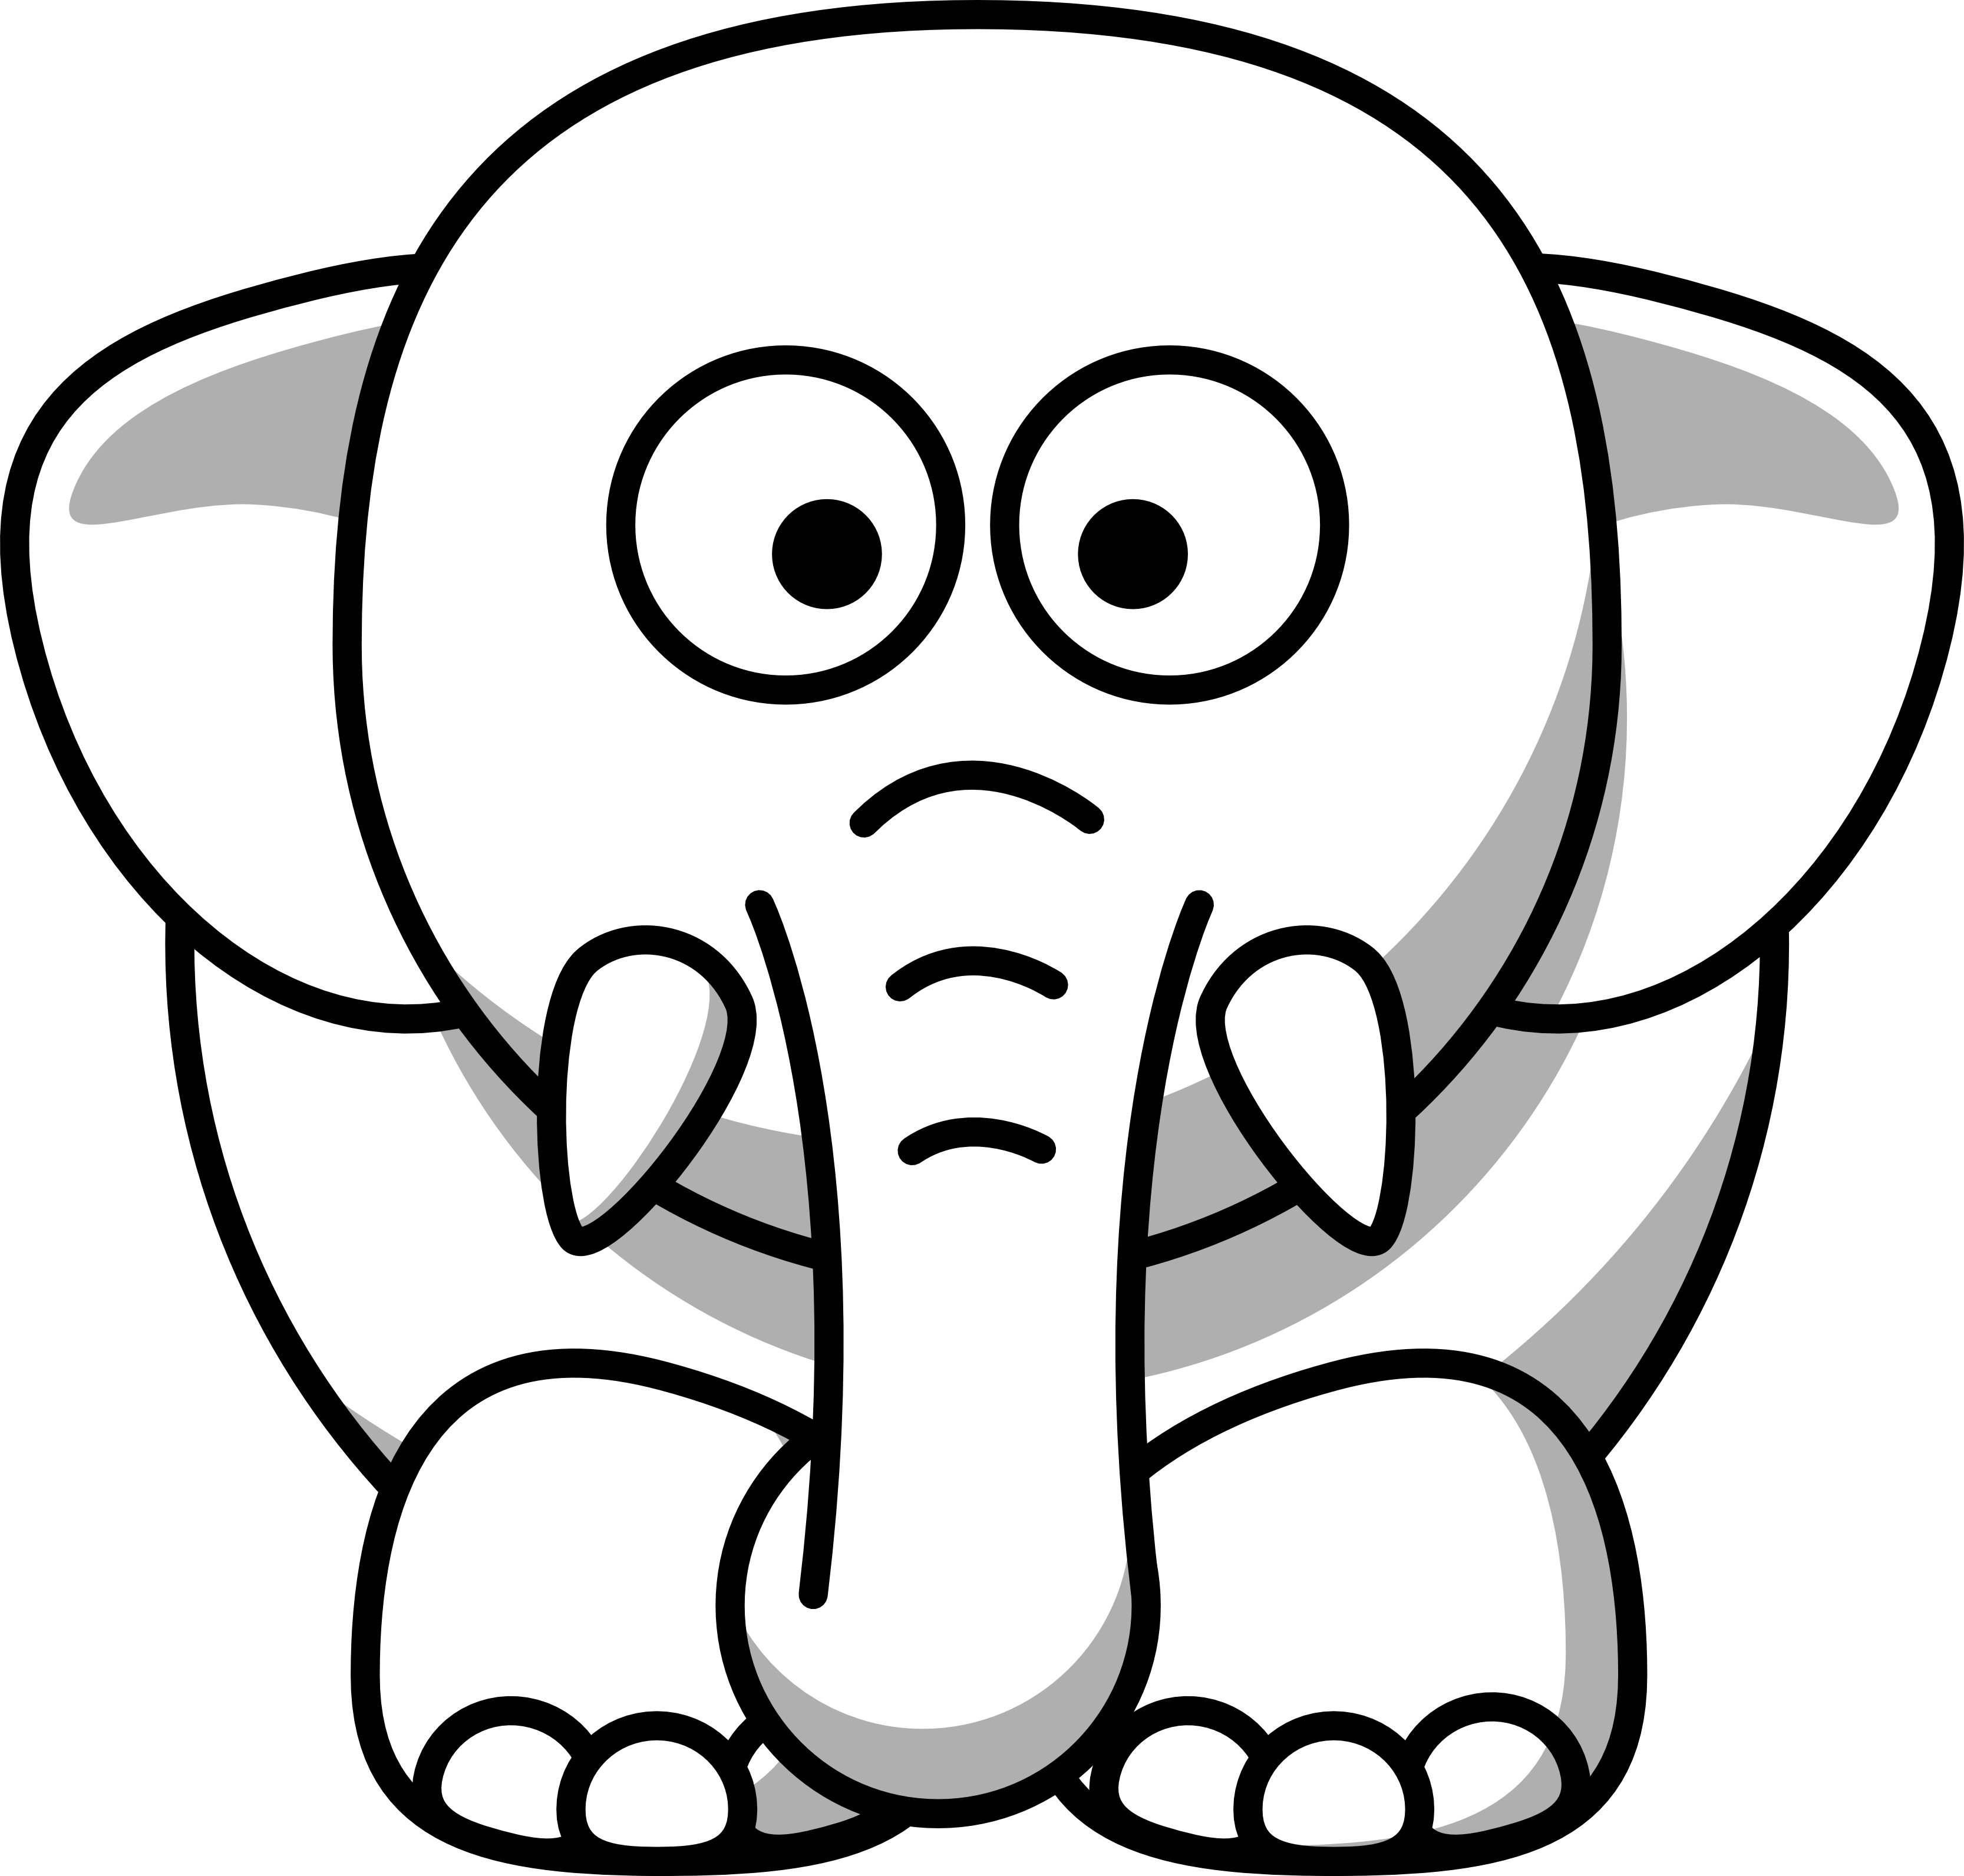 Line Drawing Of Elephant : Elephant head clipart black and white panda